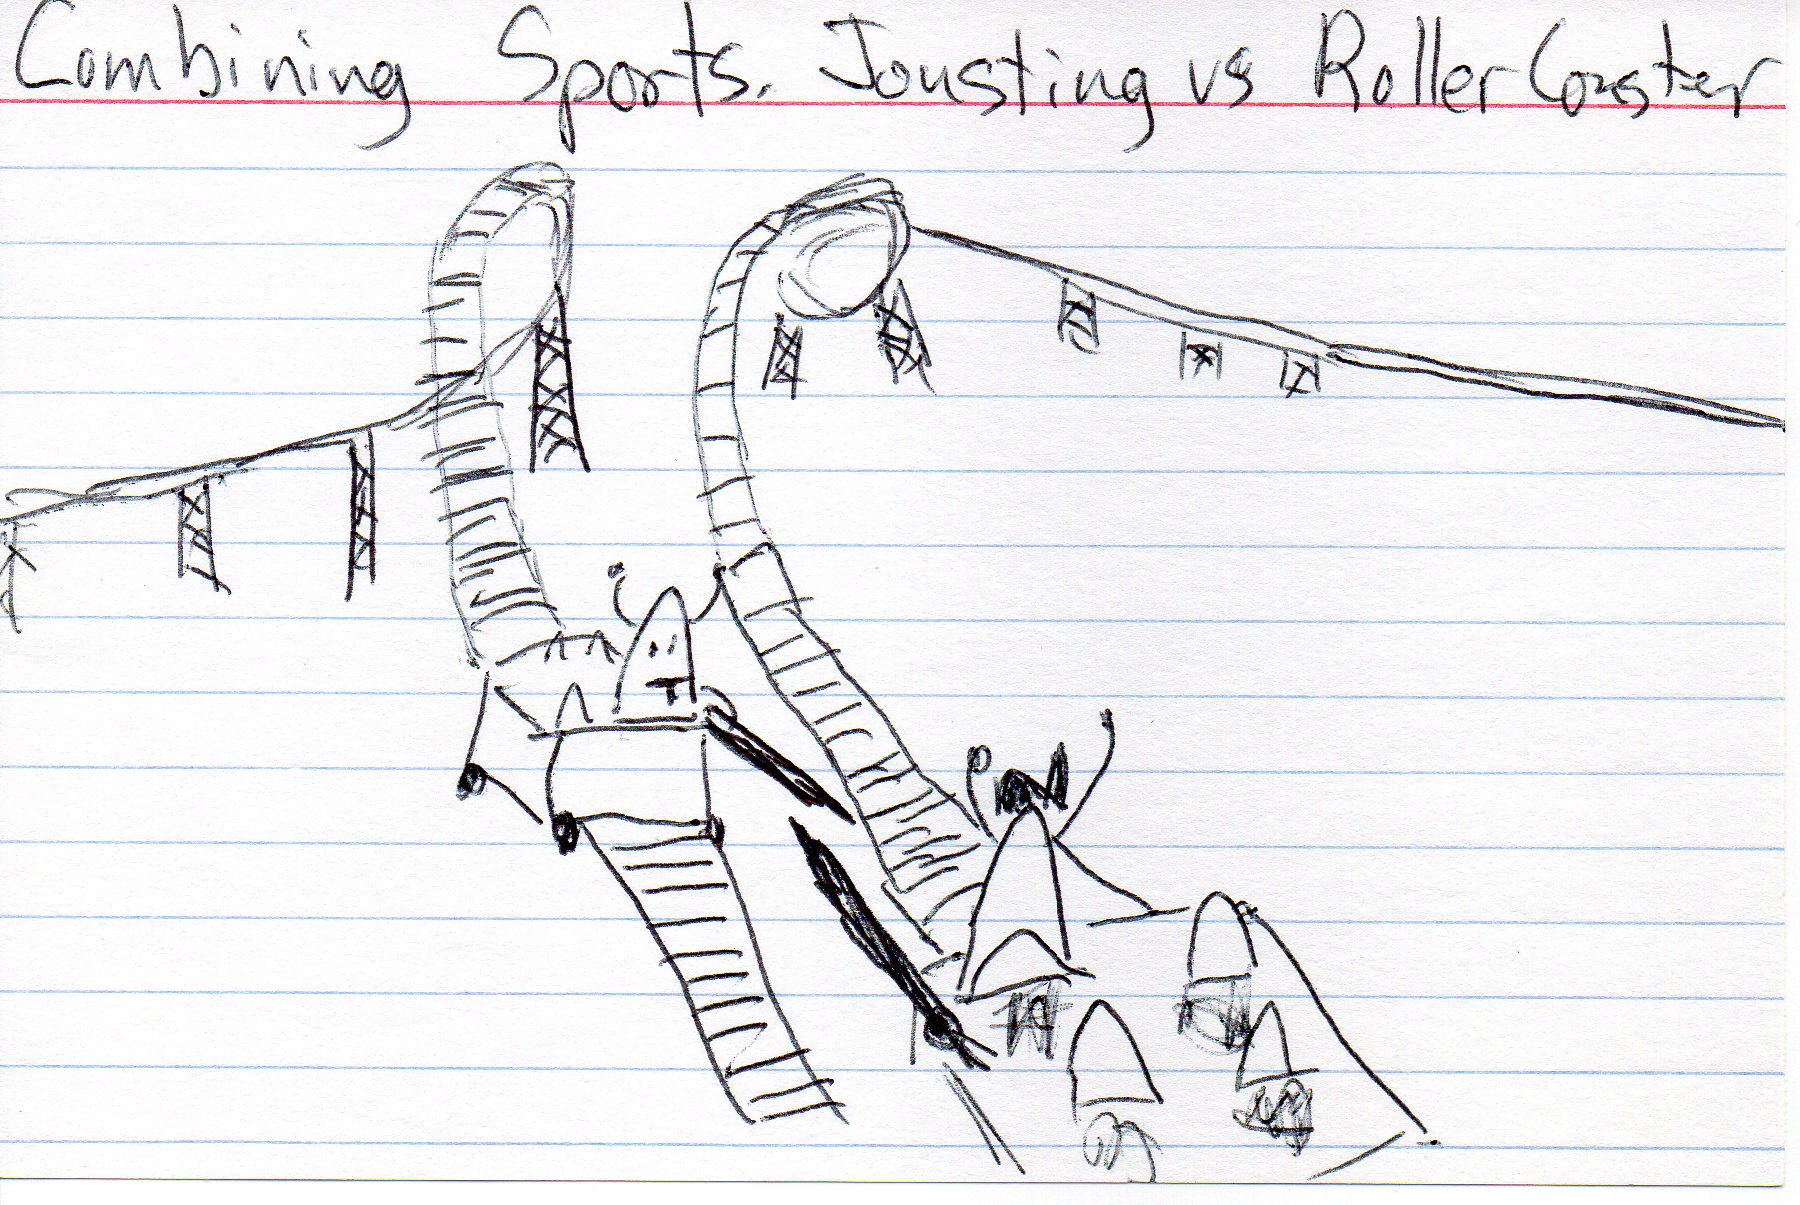 jousting vs roller coasters [click to embiggen]